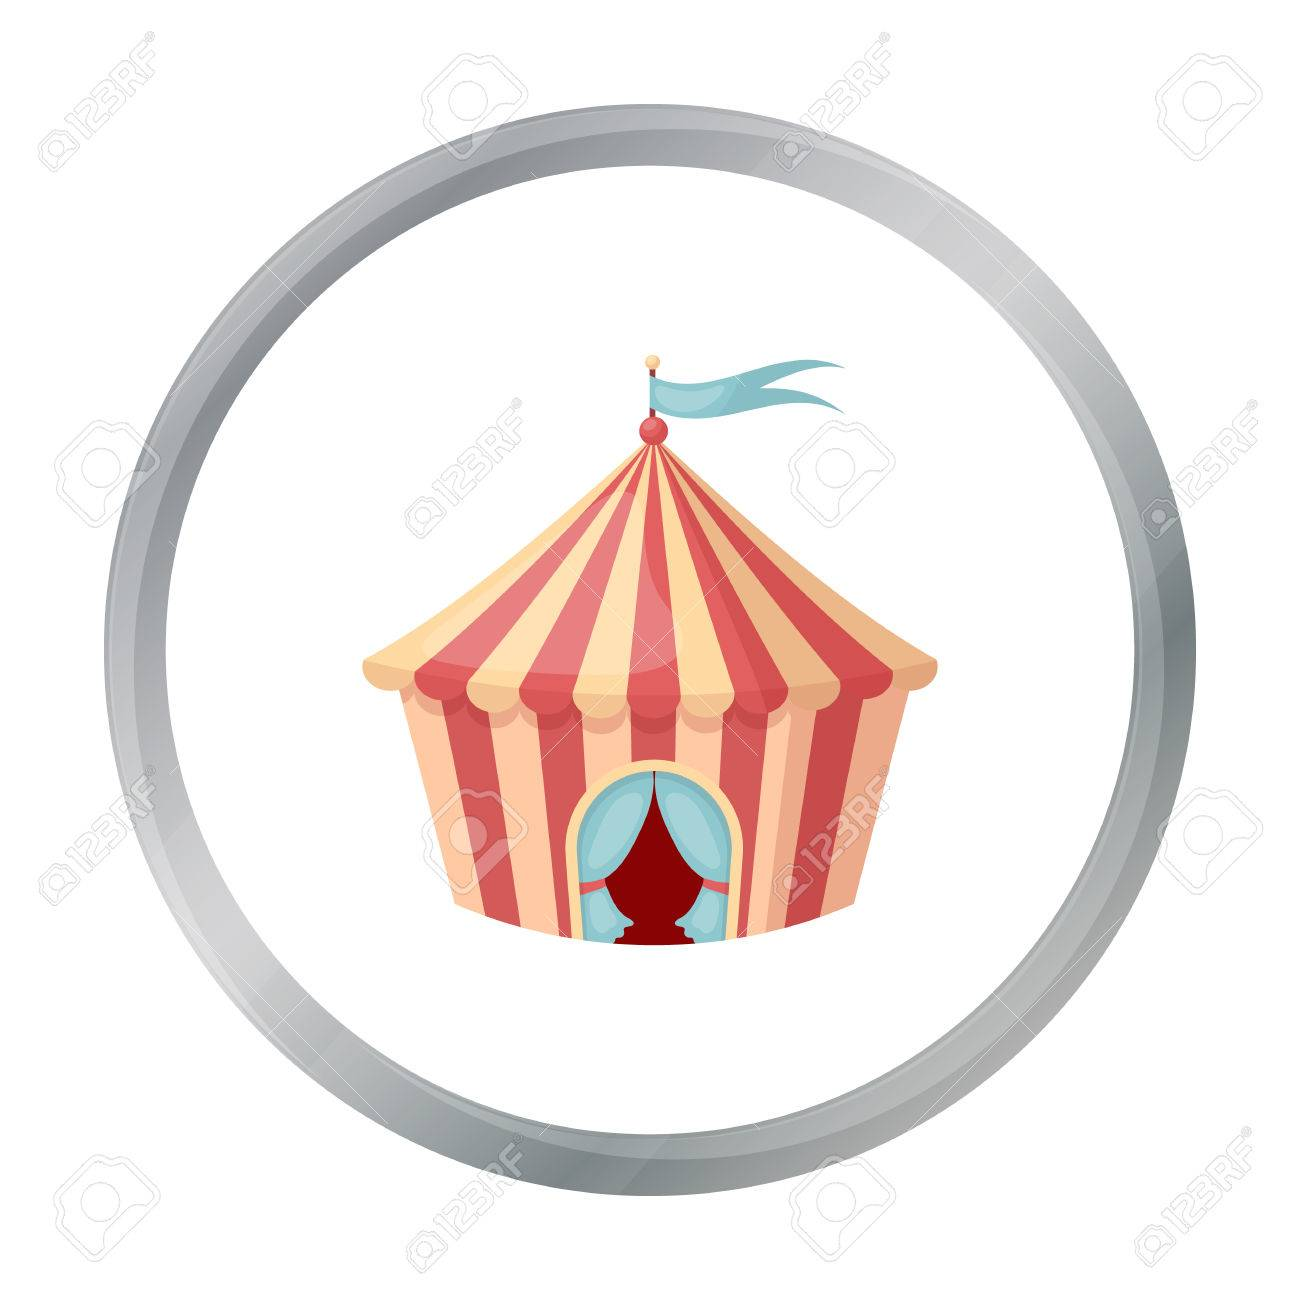 Circus tent icon in cartoon style isolated on white background. Circus symbol stock vector illustration  sc 1 st  123RF Stock Photos & Circus Tent Icon In Cartoon Style Isolated On White Background ...